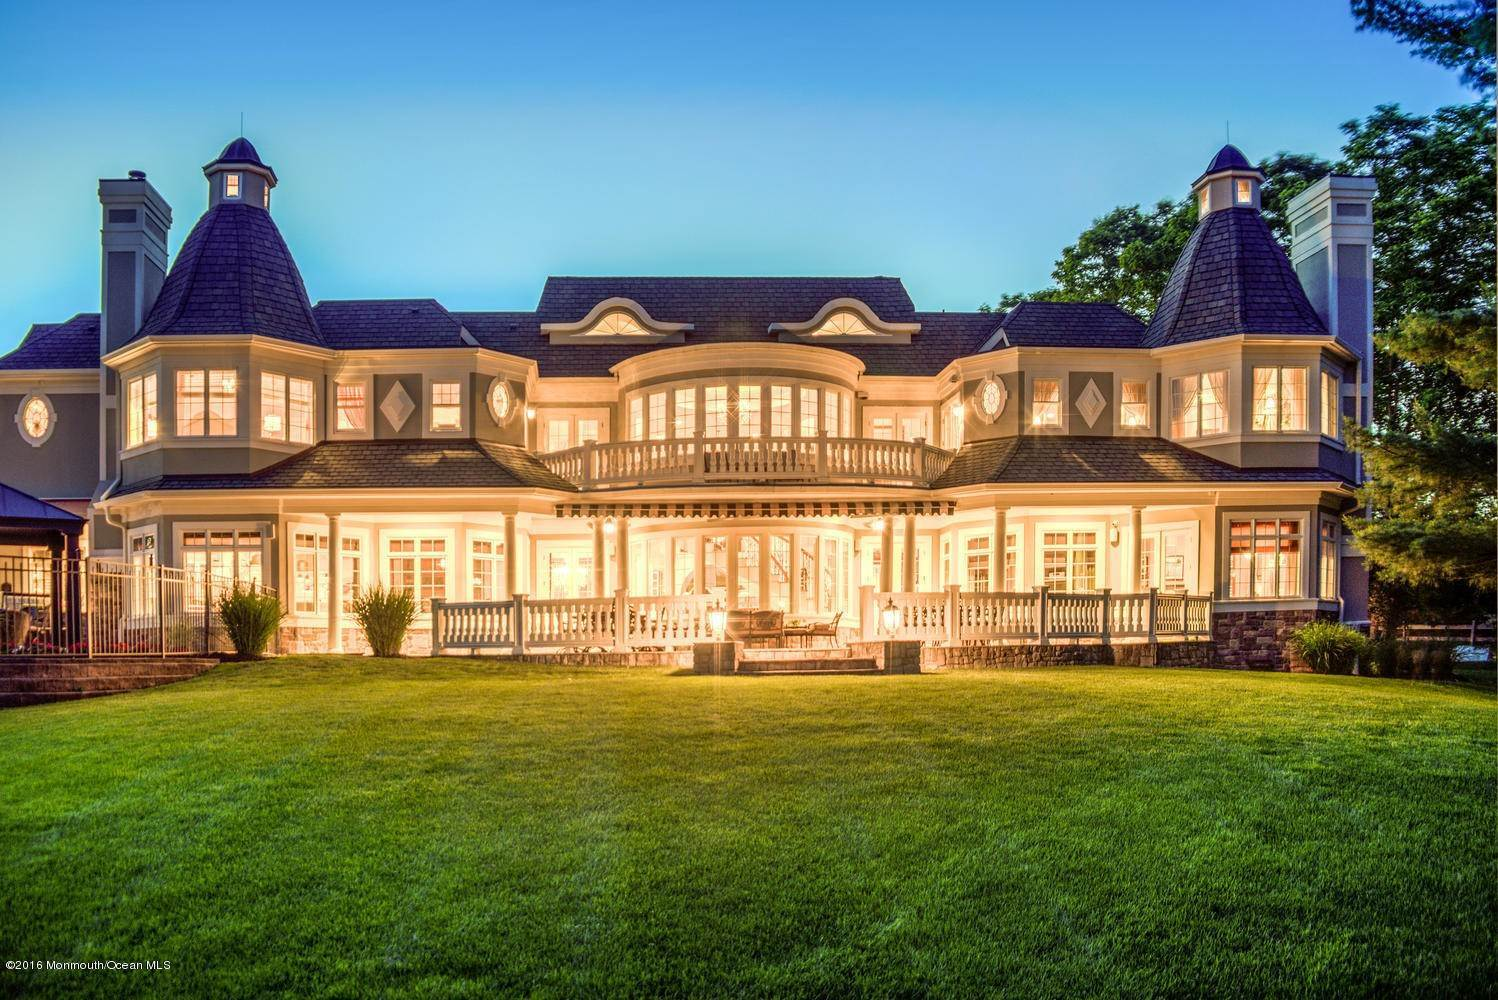 17. Single Family Homes for Sale at 21 Hominy Hill Road Colts Neck, New Jersey 07722 United States